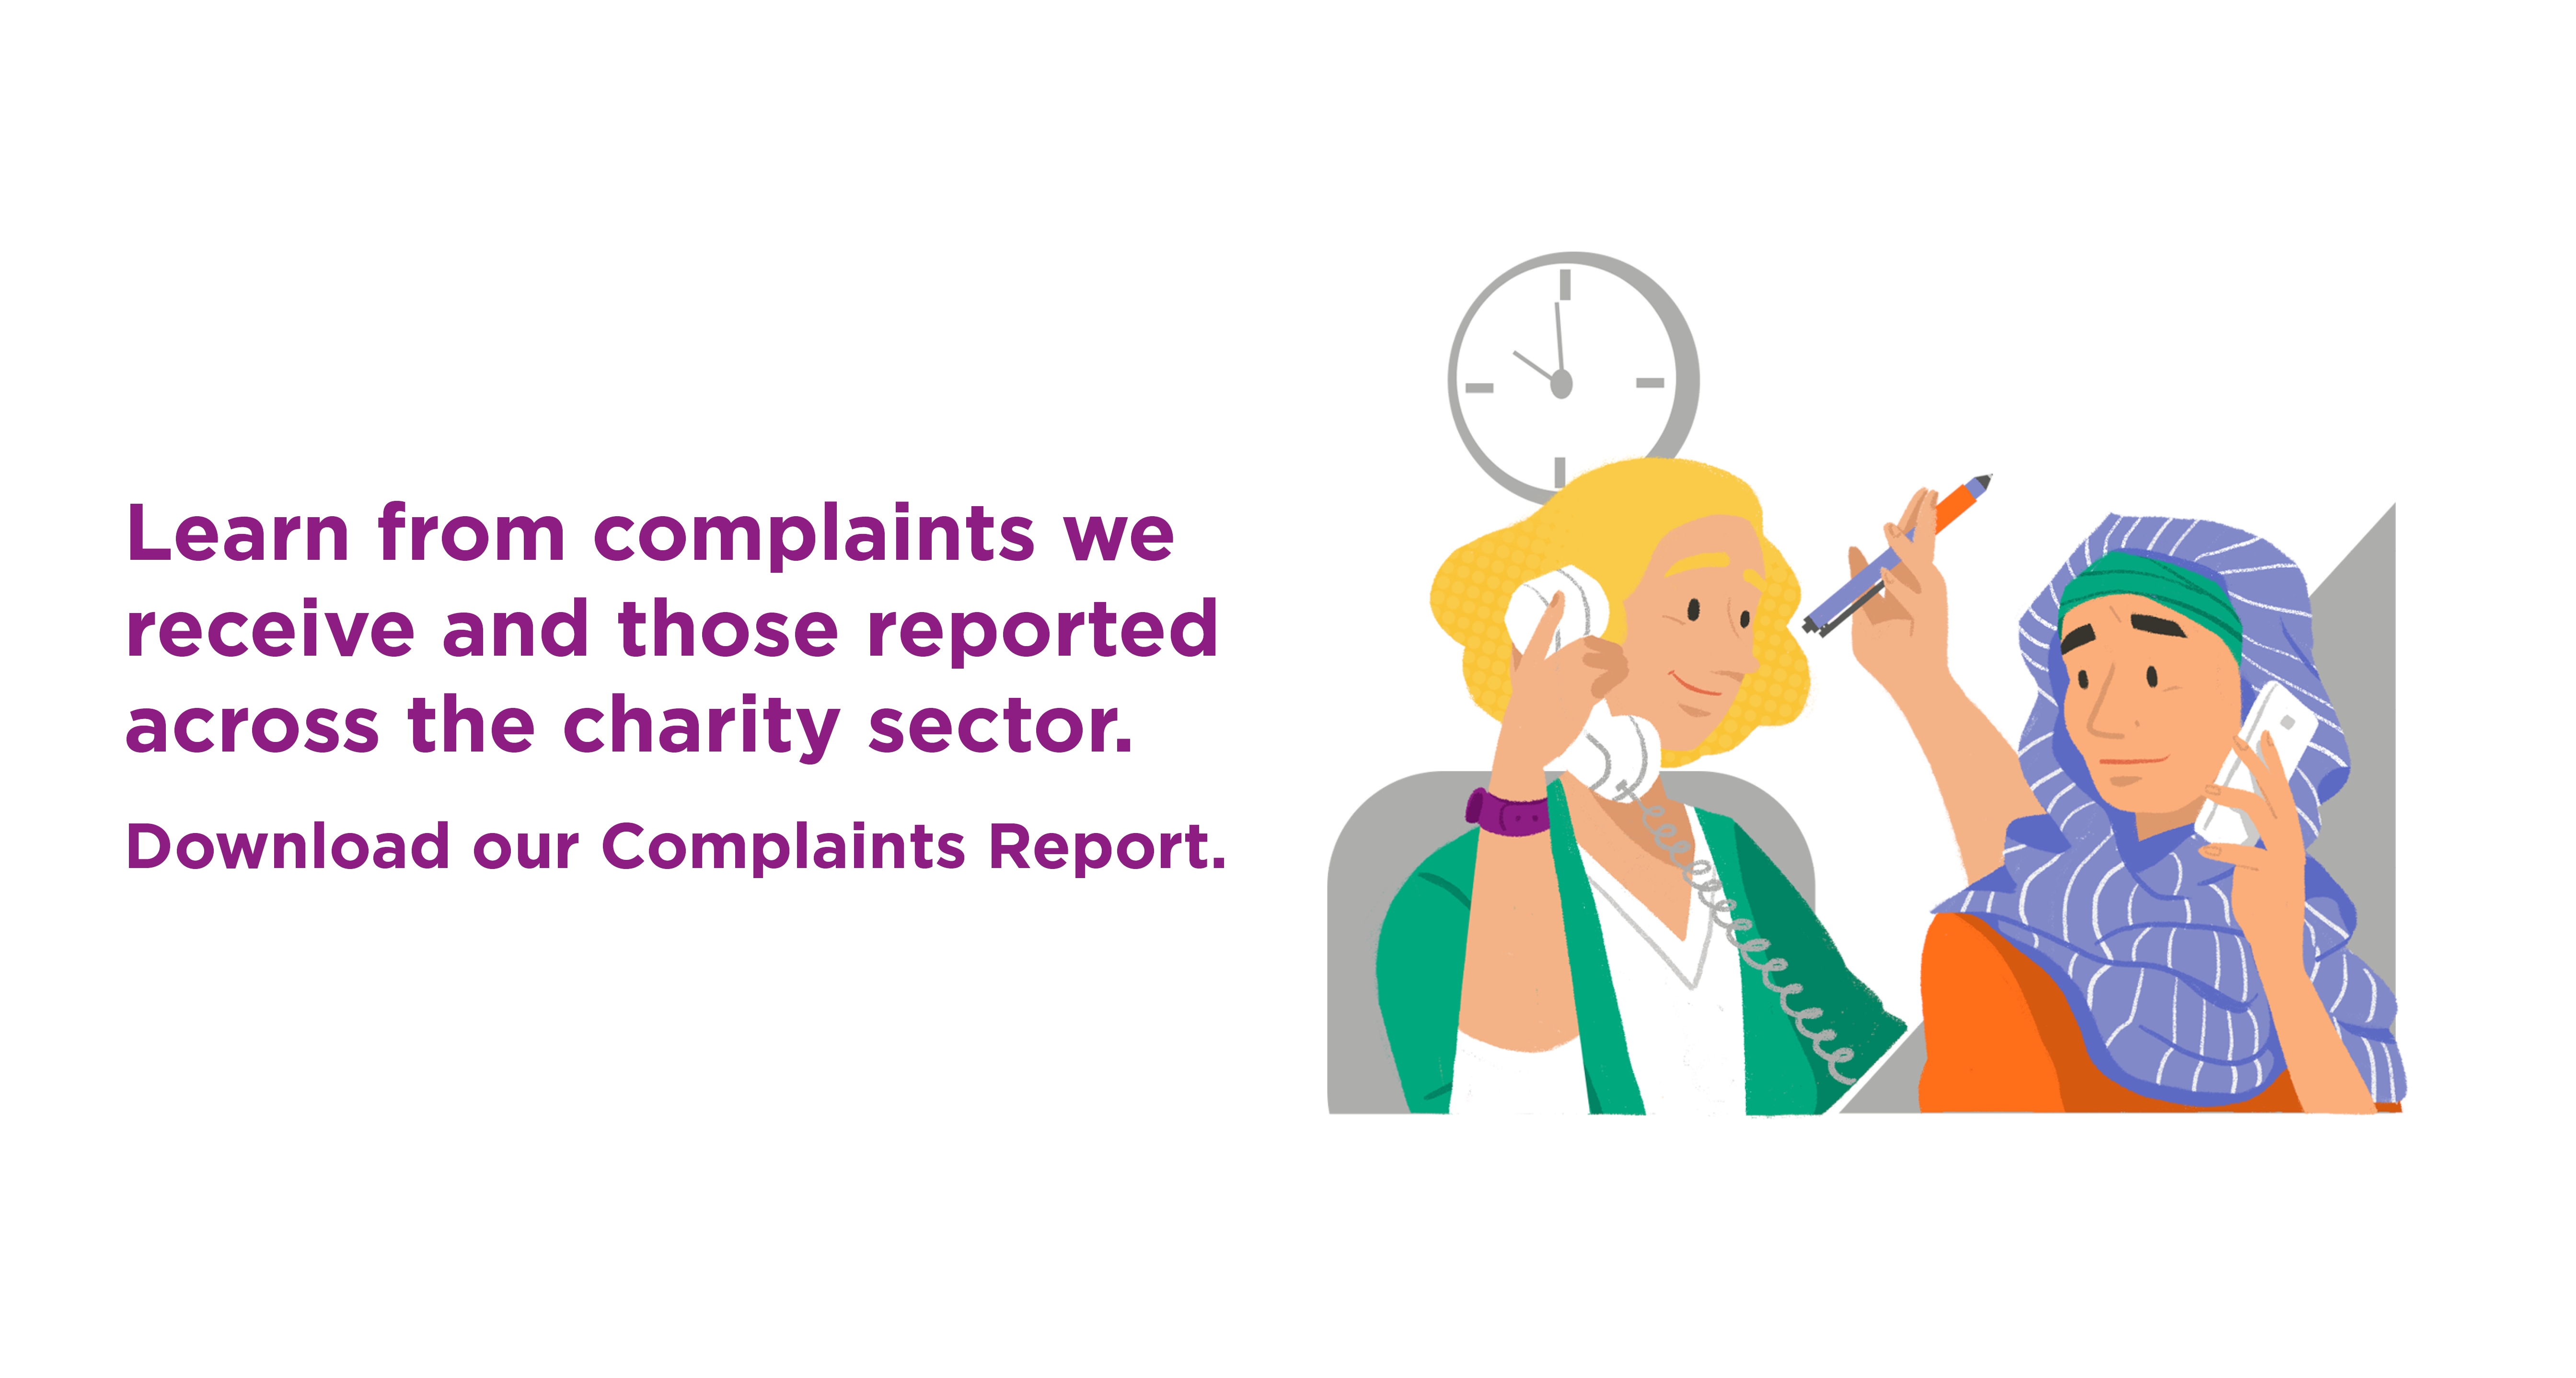 Learn from complaints we receive and those reported across the charity sector